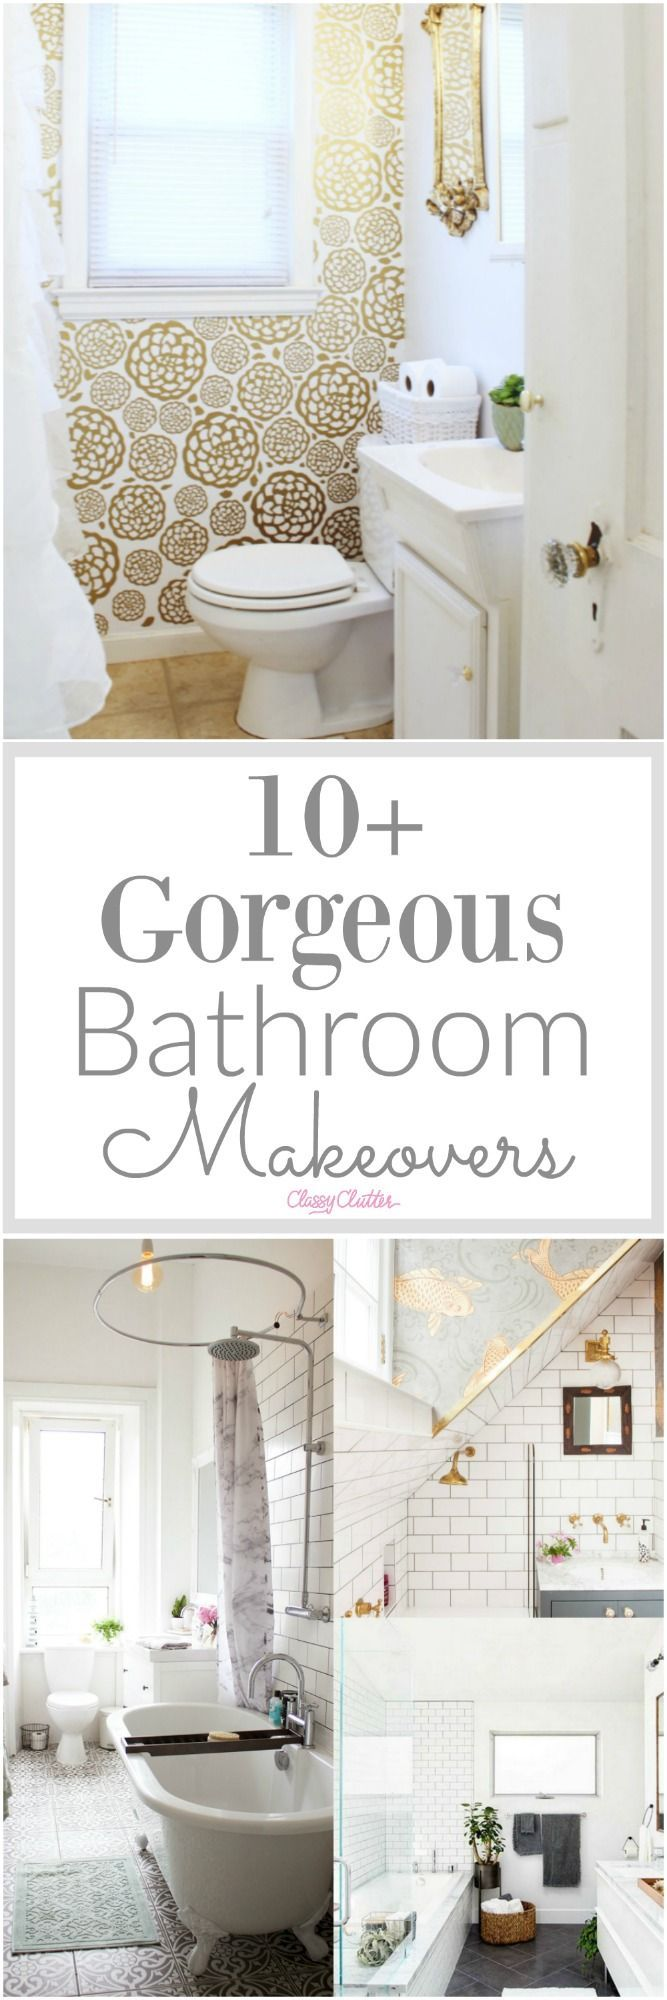 10 bathroom remodeling ideas in one picture - 10 Gorgeous Bathroom Makeovers Bathroom Makeoversbathroom Remodelingremodeling Ideasmakeover